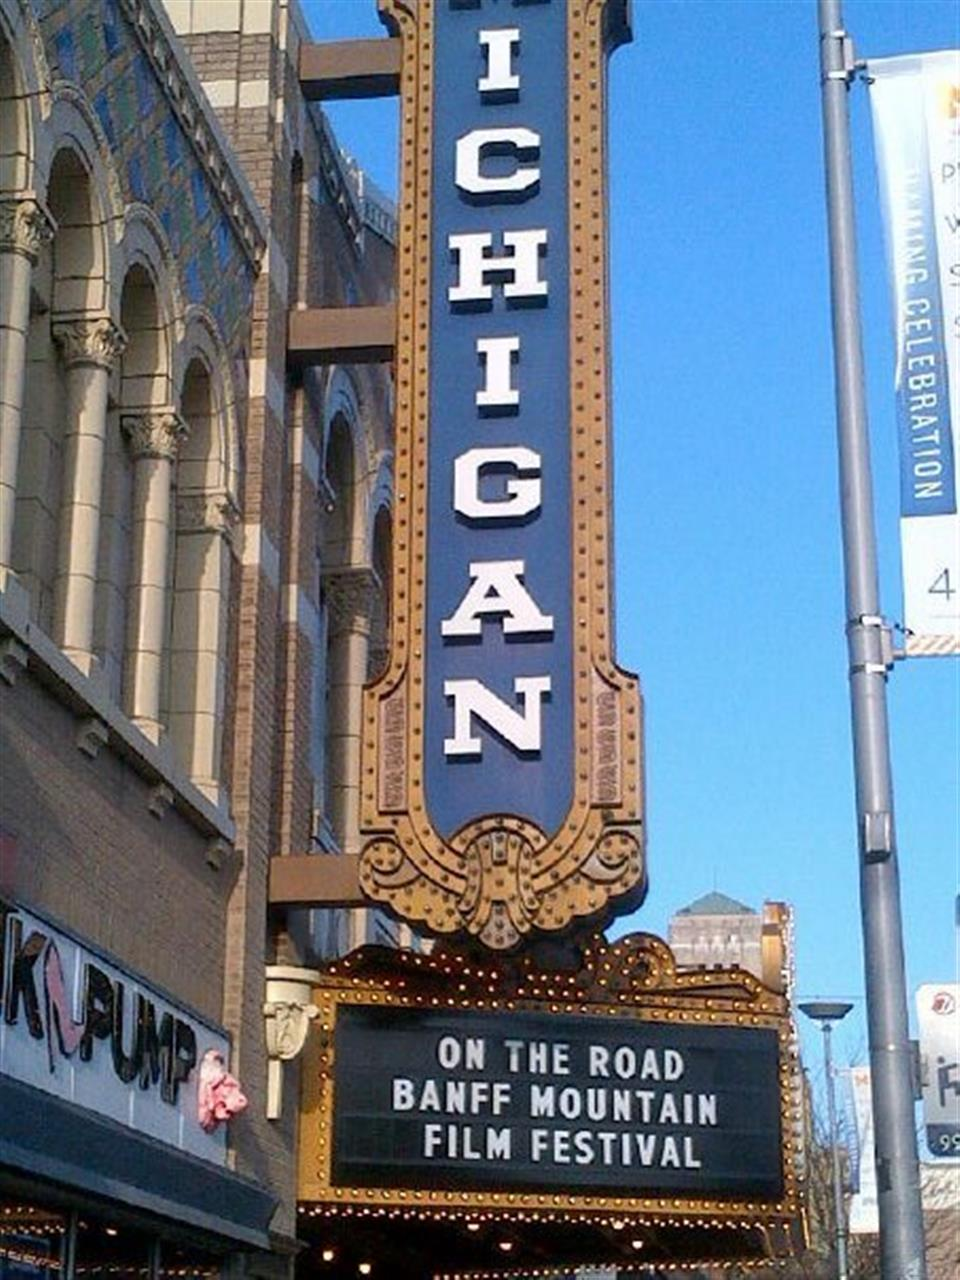 Michigan Theater and the Banff Mountain Film Festival ~ Ann Arbor, Michigan #LeadingRElocal